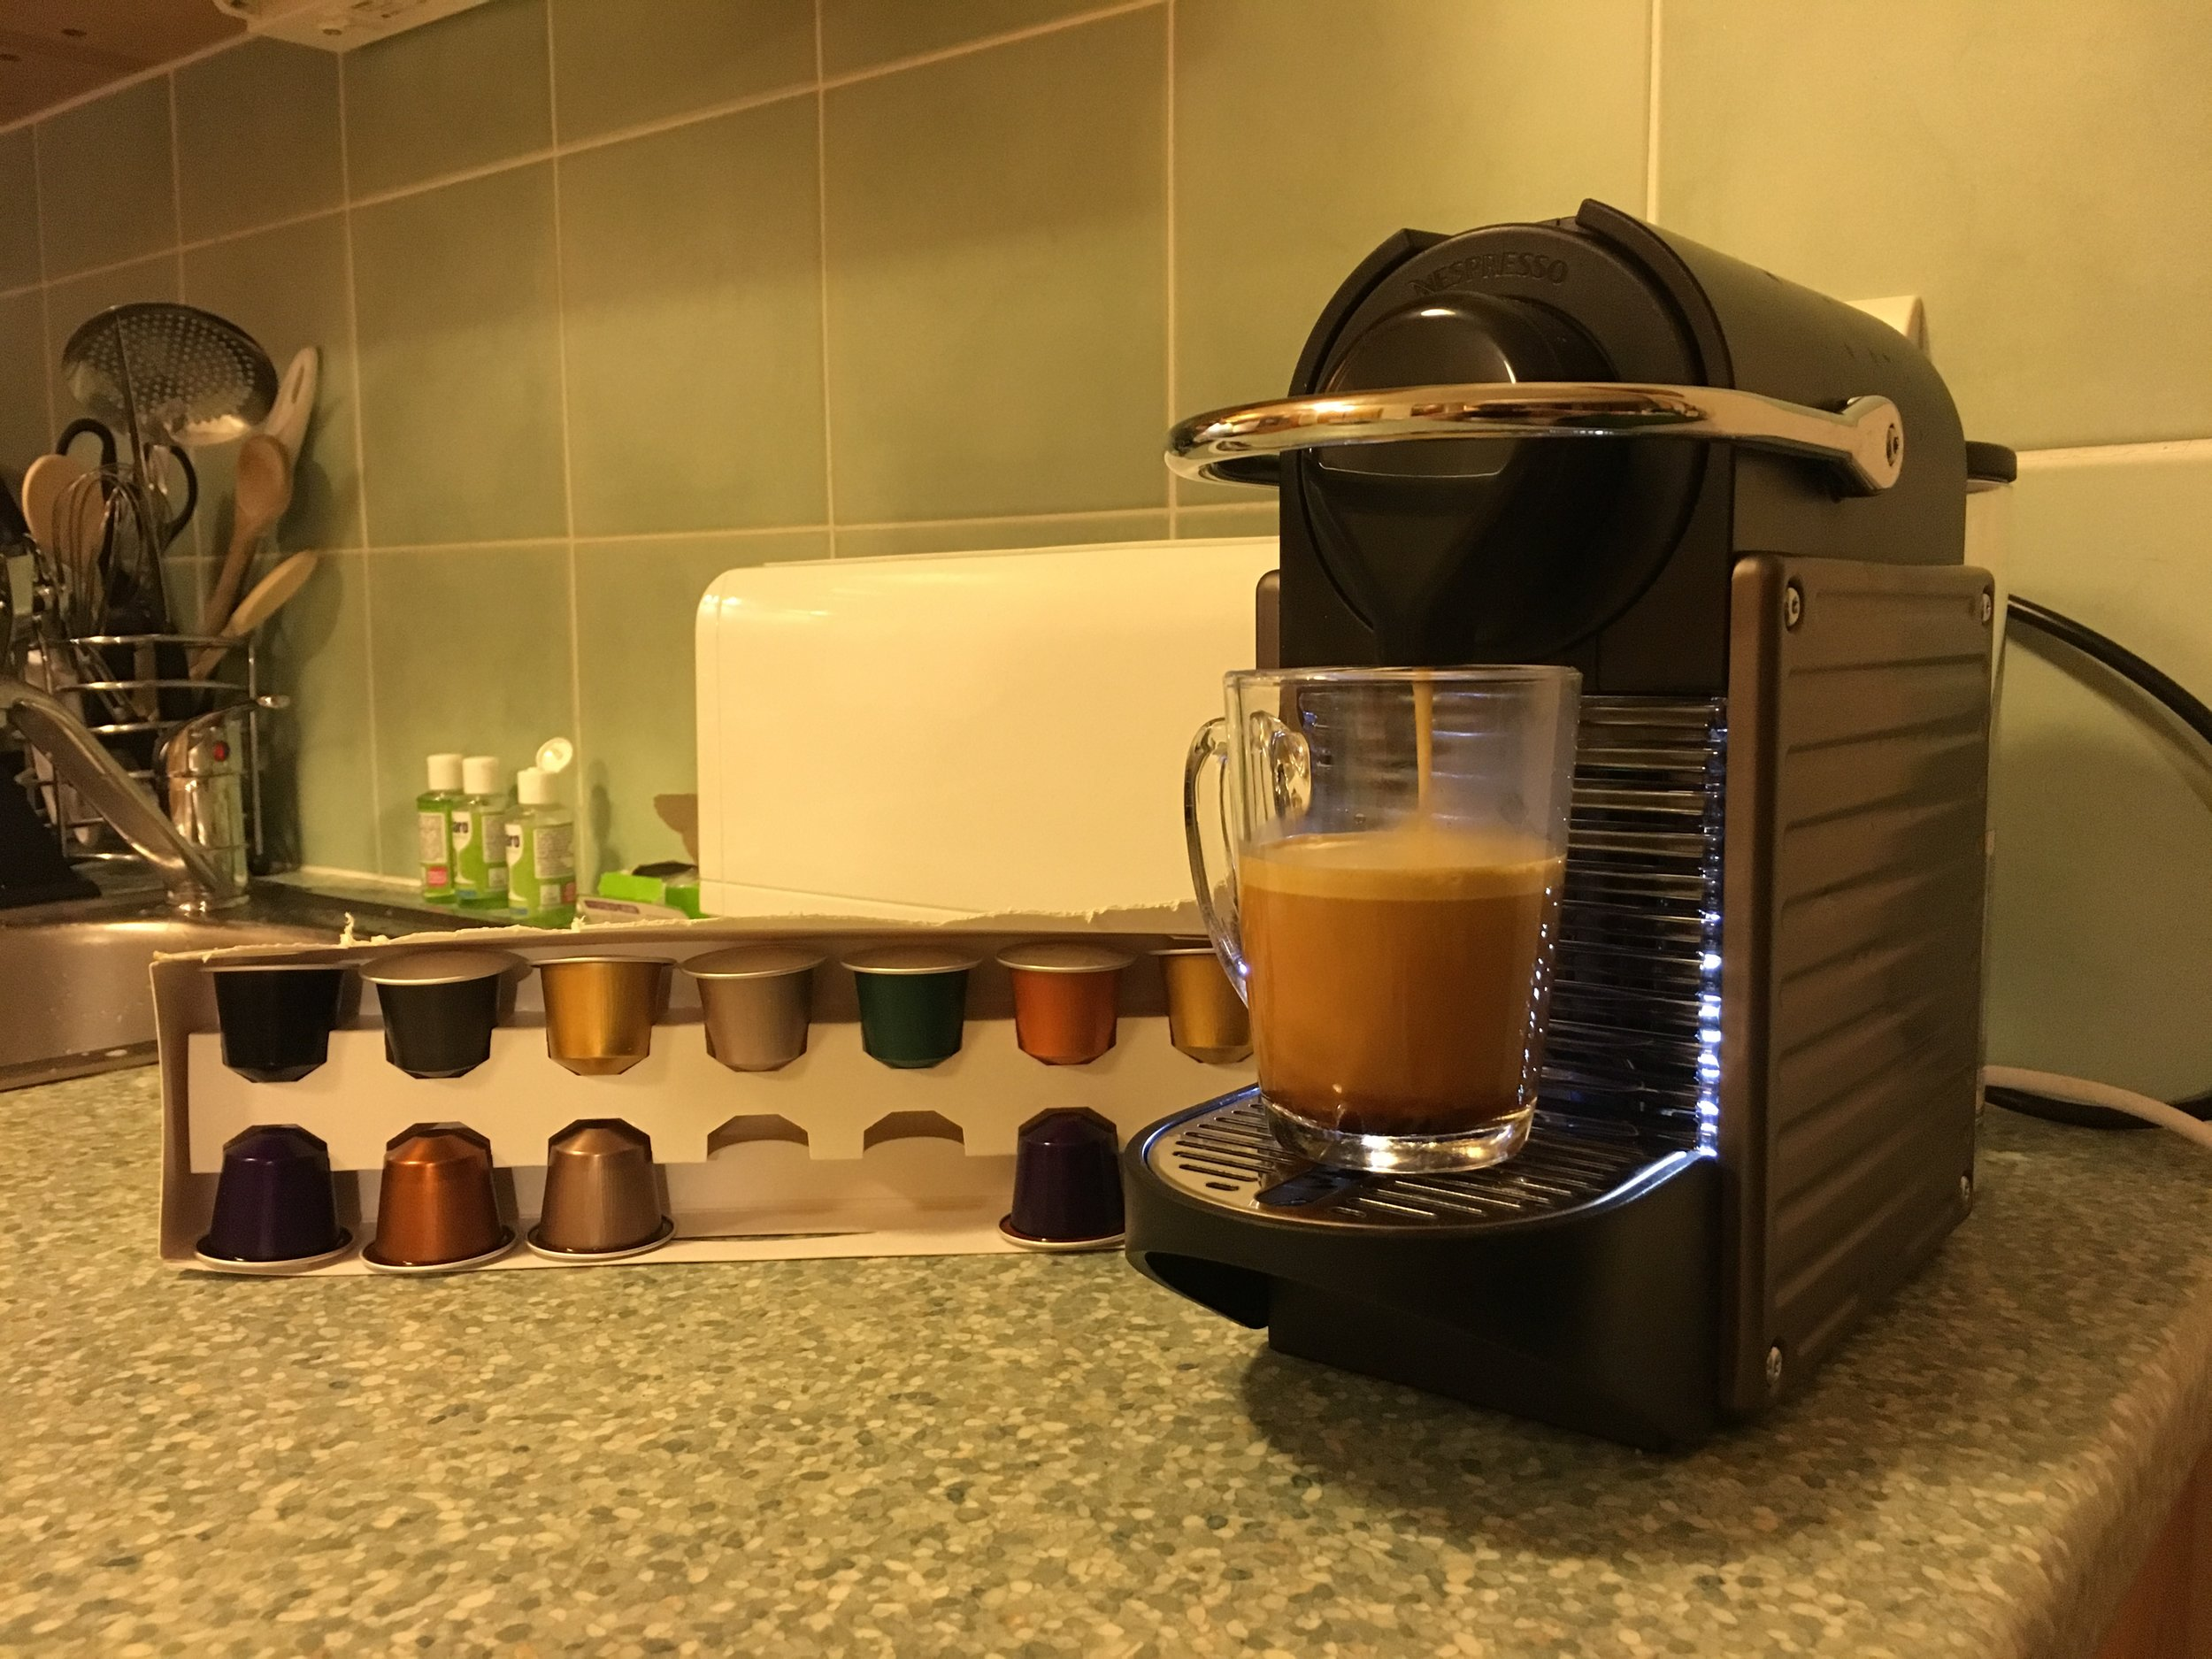 coffee machine nespresso luxury .jpg